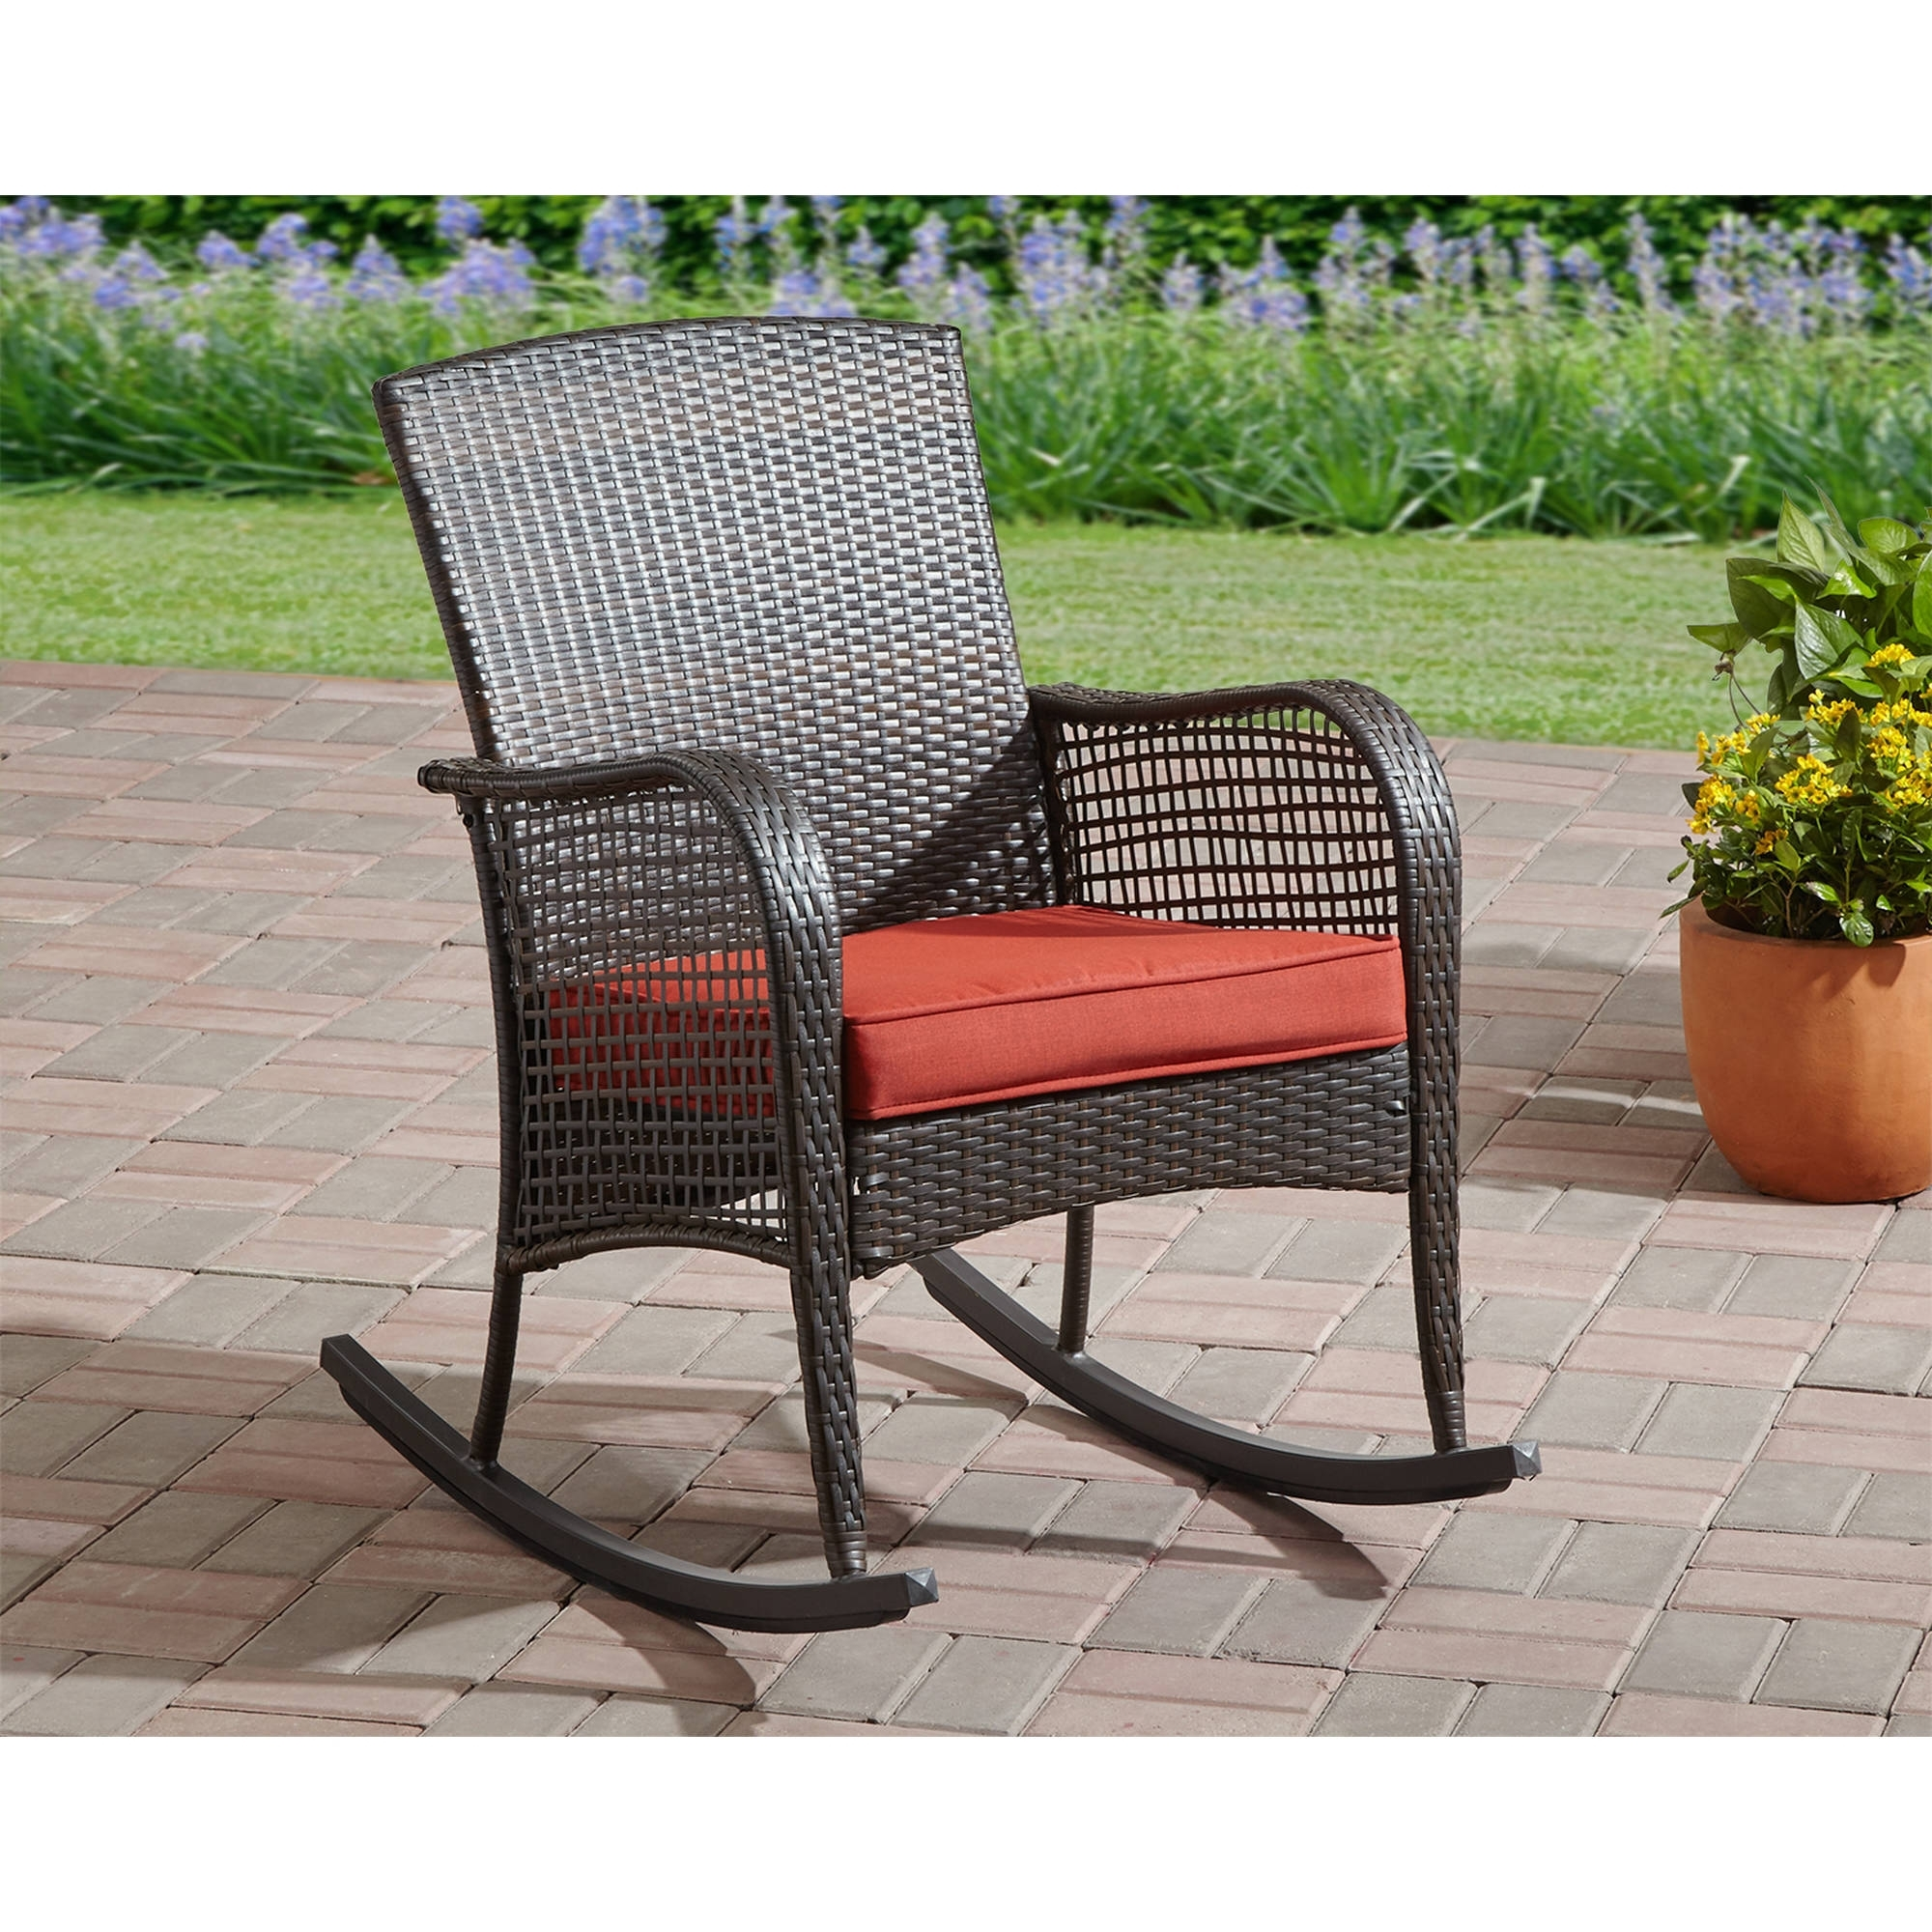 Inspiration about Rocking Chair Cushion Seat Wicker Steel Frame Outdoor Patio Deck With Regard To Wicker Rocking Chairs With Cushions (#9 of 15)